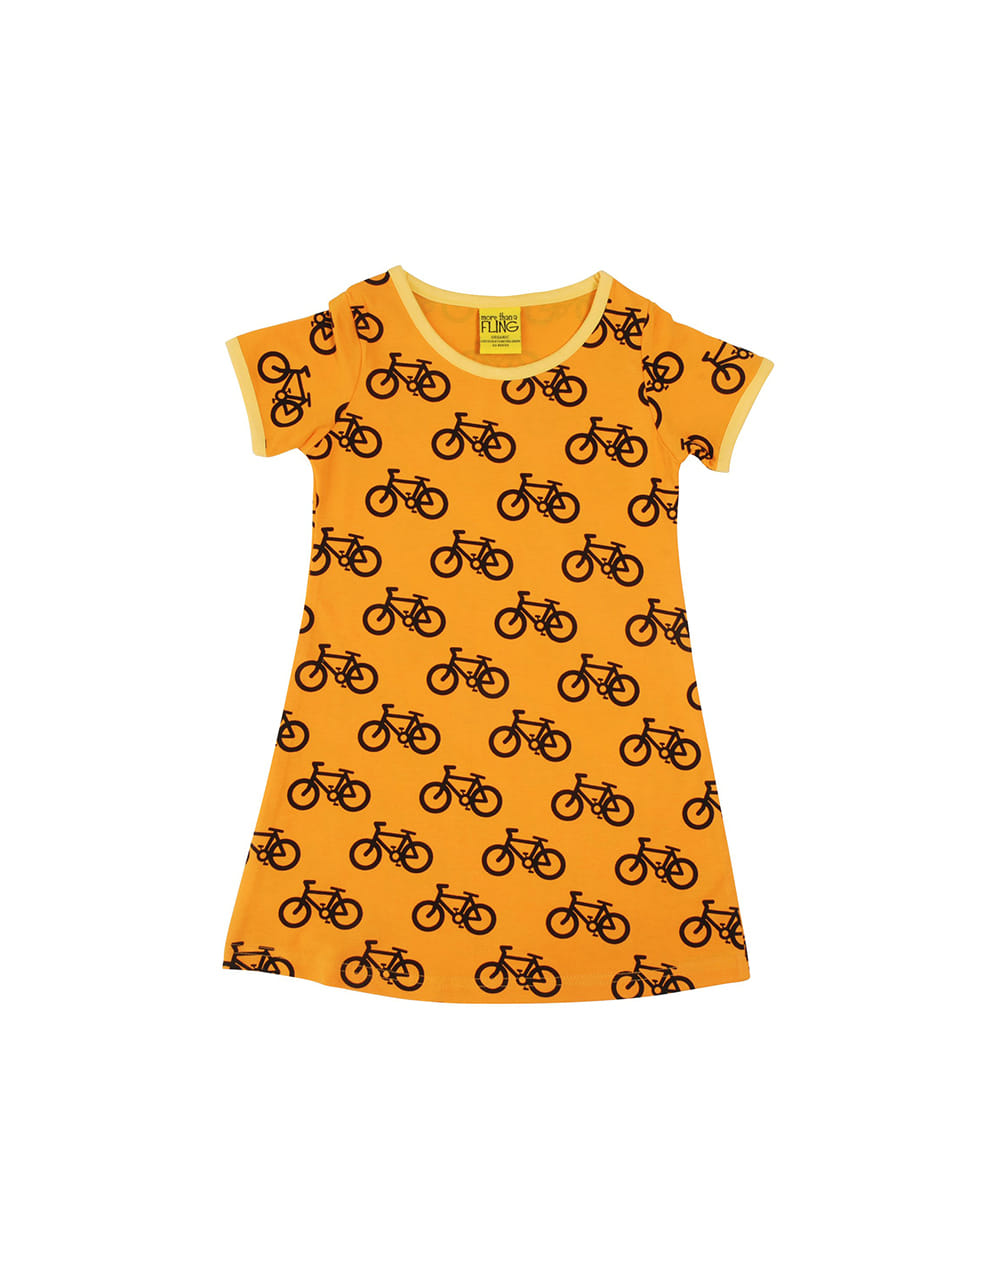 MORE THAN A FLING  SS DRESS Bike Orange